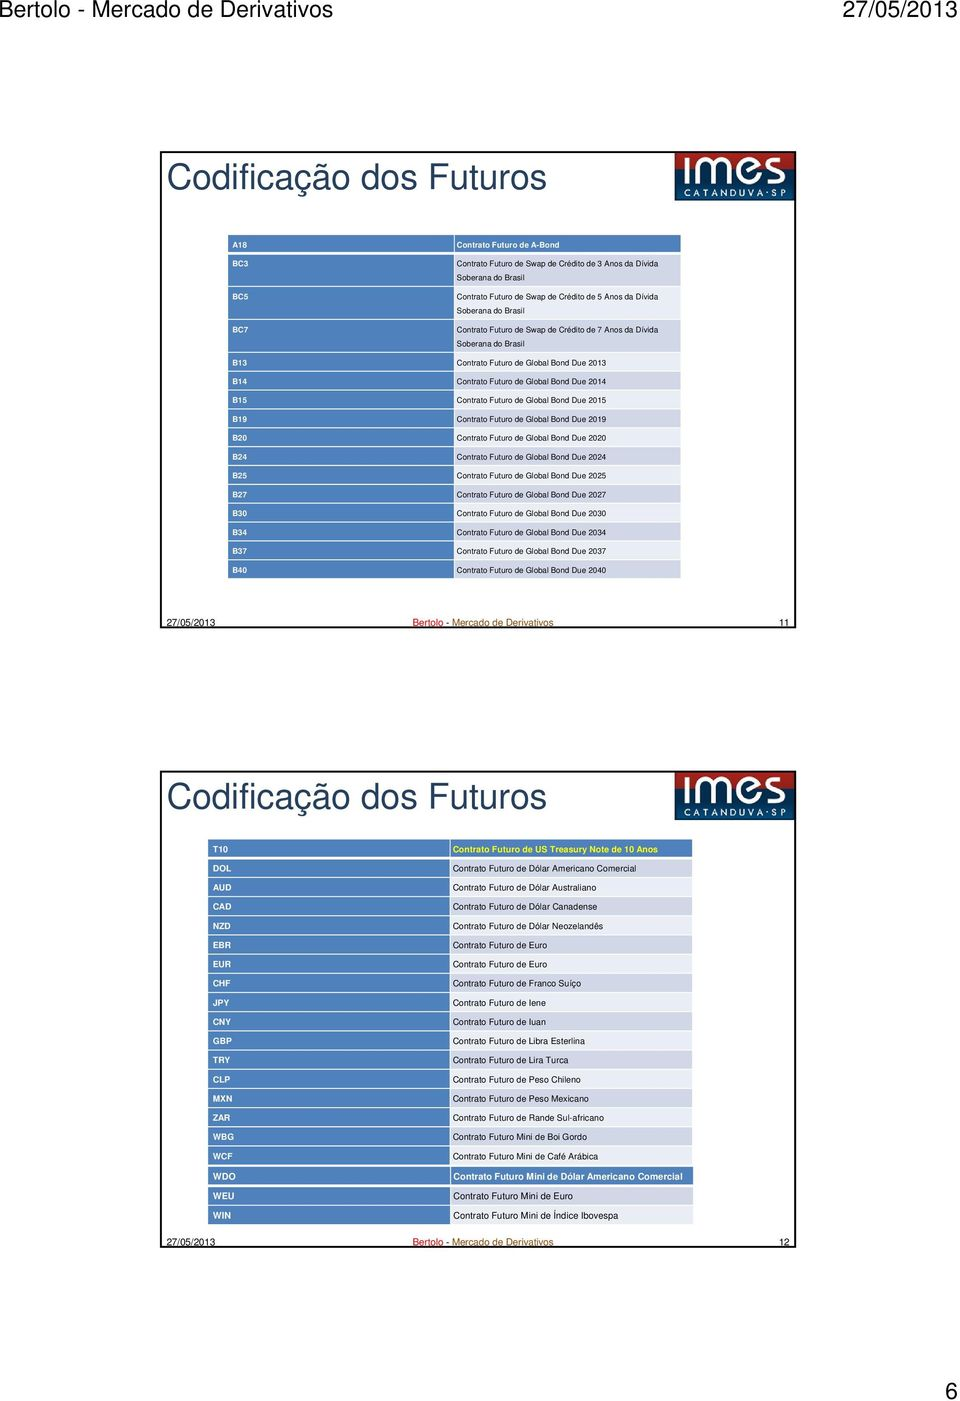 Futuro de Global Bond Due 2015 B19 Contrato Futuro de Global Bond Due 2019 B20 Contrato Futuro de Global Bond Due 2020 B24 Contrato Futuro de Global Bond Due 2024 B25 Contrato Futuro de Global Bond